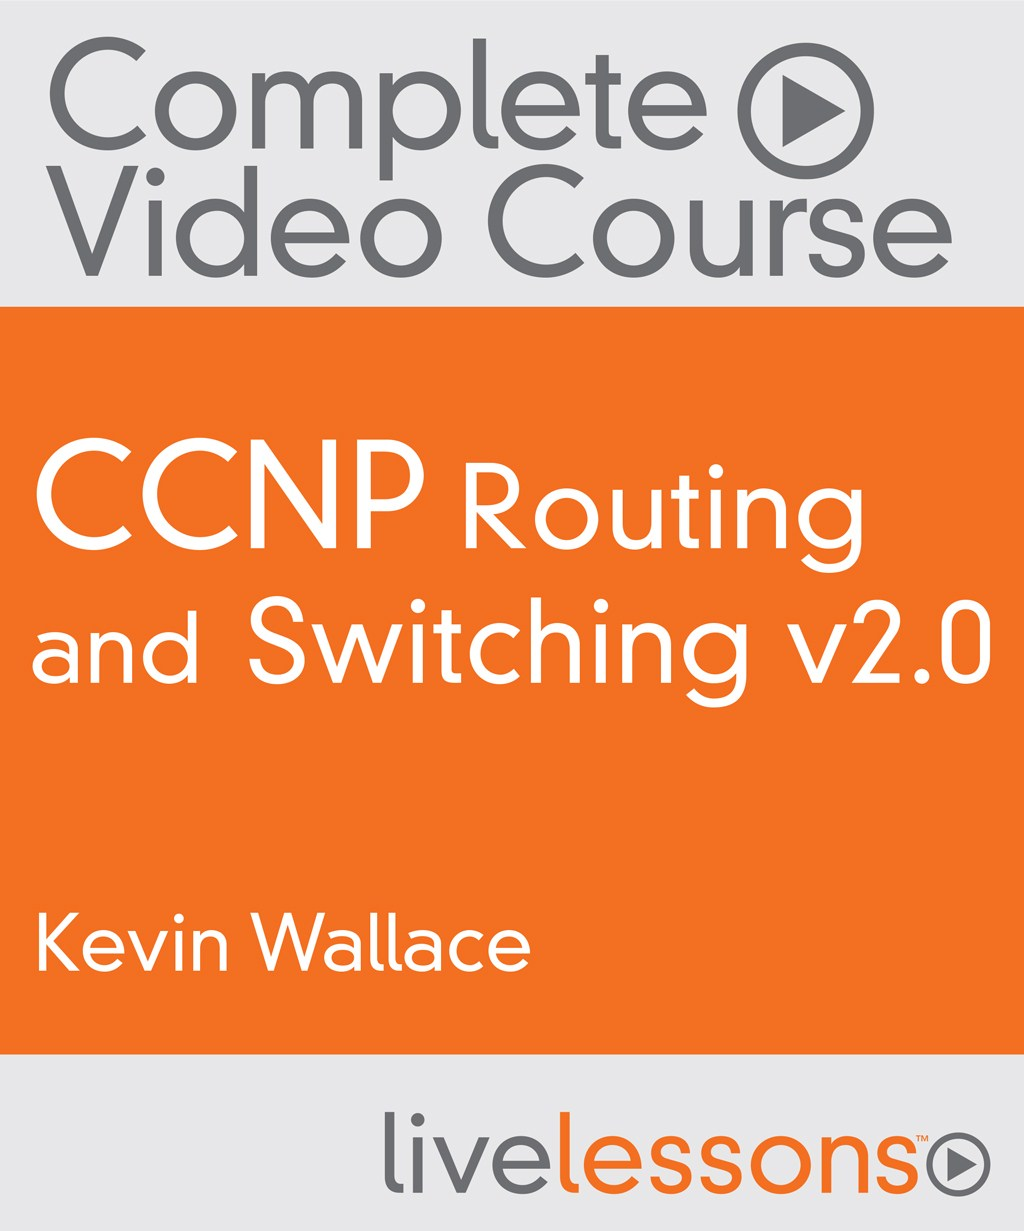 CCNP Routing and Switching v2.0 Complete Video Course Library: ROUTE 300-101, SWITCH 300-115, and TSHOOT 300-135 Interactive Video Training